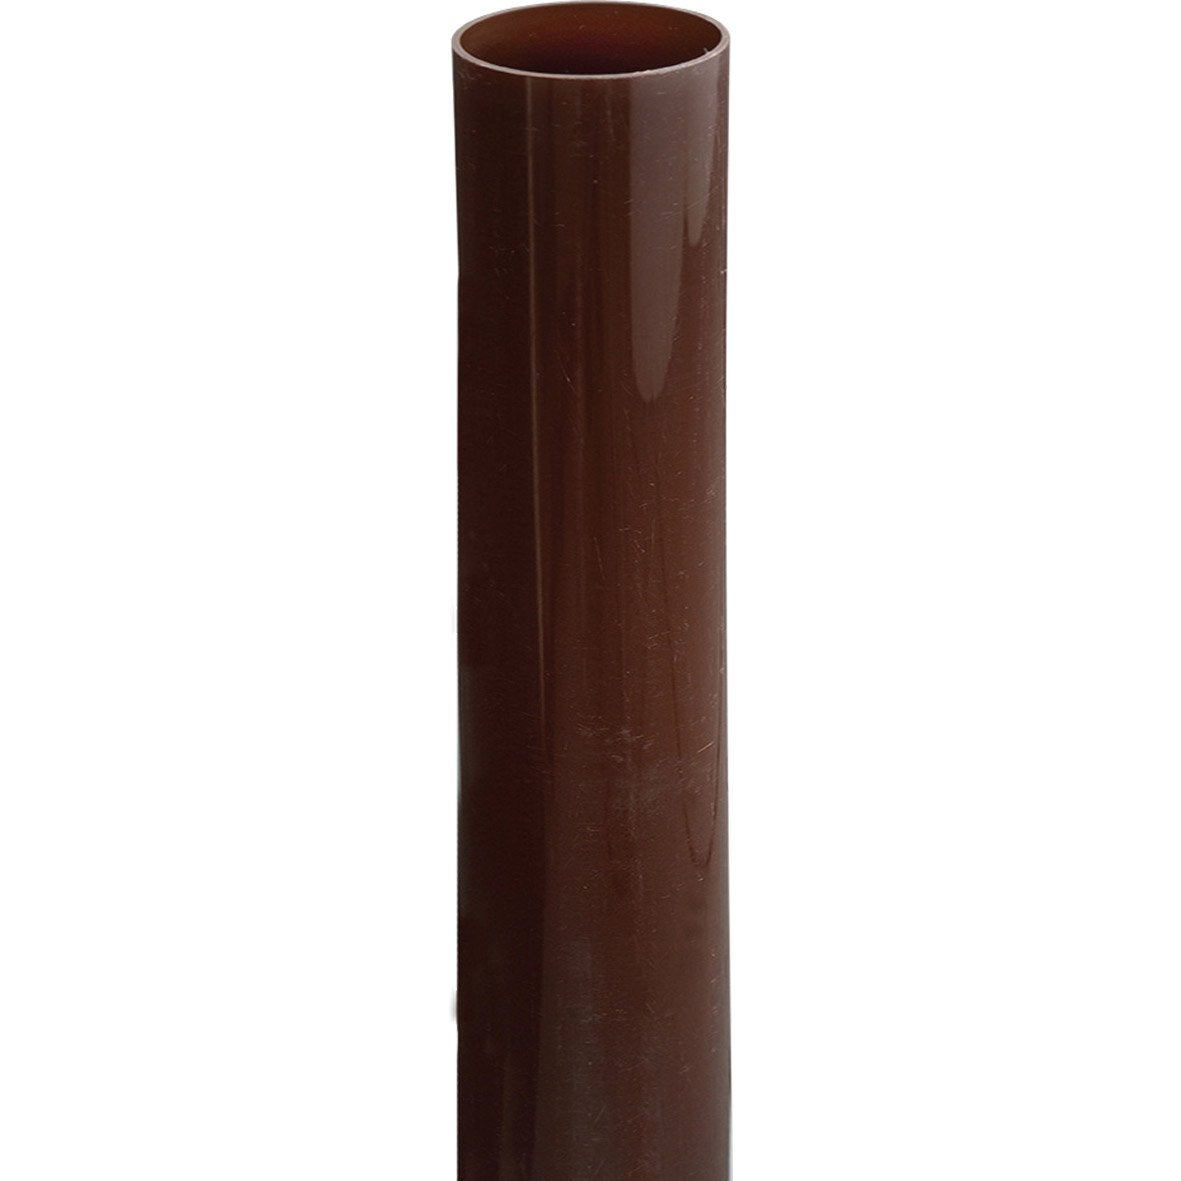 Tuyau de descente pvc marron mm l 2 m girpi for Wohnwand 2 50 m